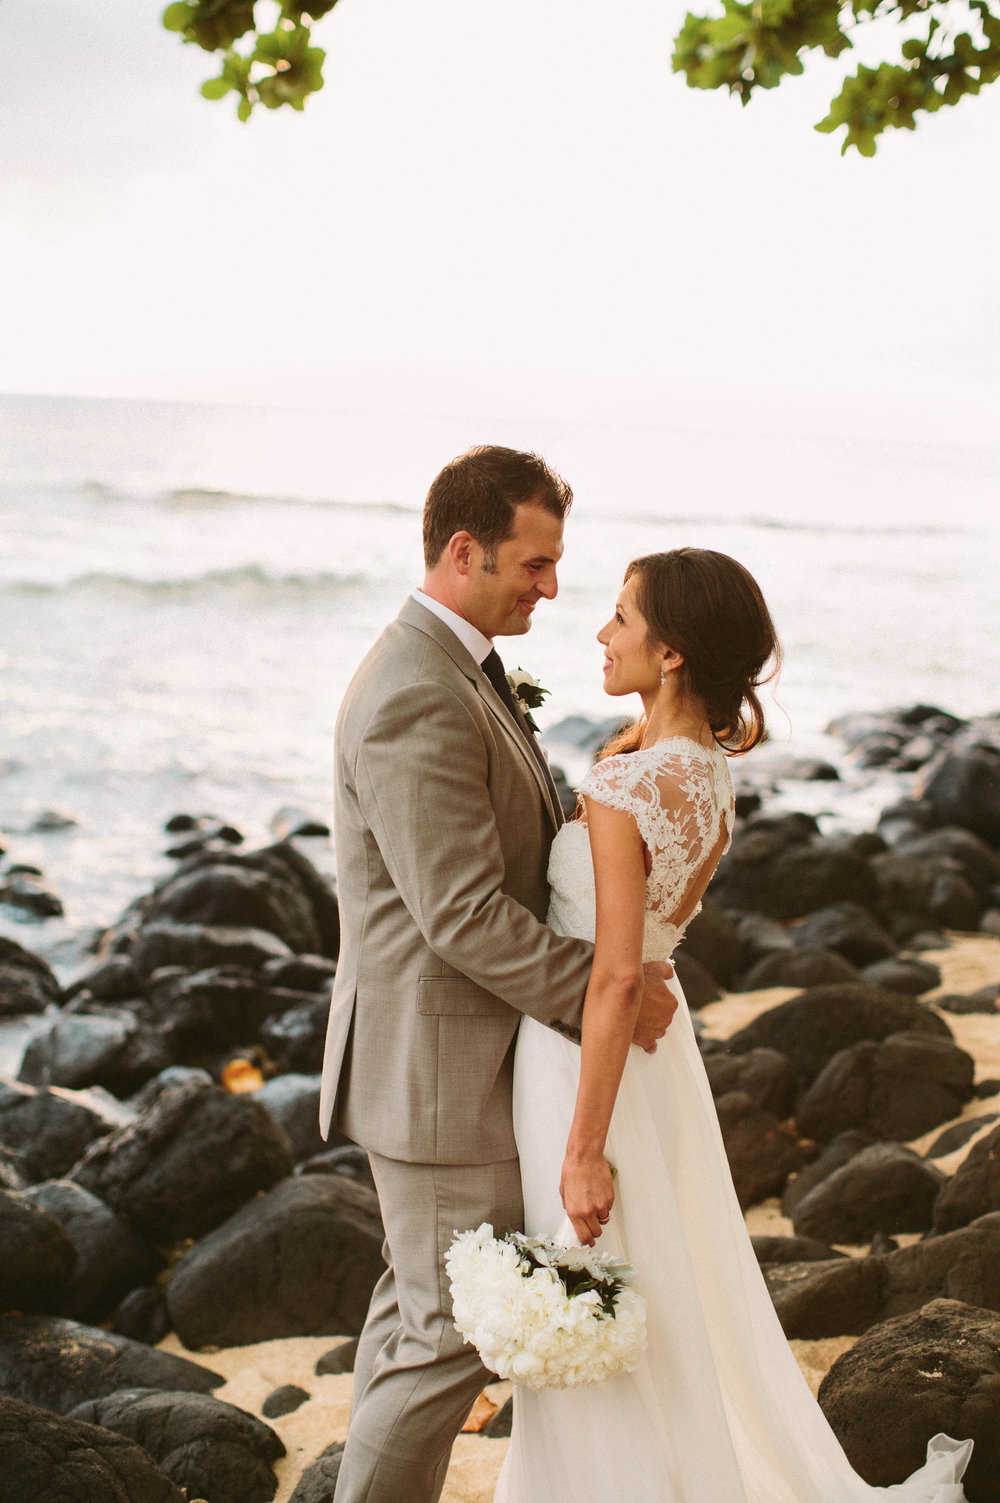 Penny Dinn Photography | Kauai Wedding Photographer Kauai Photographer Los Angeles Wedding Photographer  Santa Barbara Wedding Photographer California Wedding Photographer  Santa Barbara Photographer. Santa Barbara Wedding Photographer. San Diego Wedding Photographer. San Diego Photographer. Los Angeles Photographer. Los Angeles Wedding Photographer. San Diego Photographer. San Diego Wedding Photographer. California Photographer. California Wedding Photographer